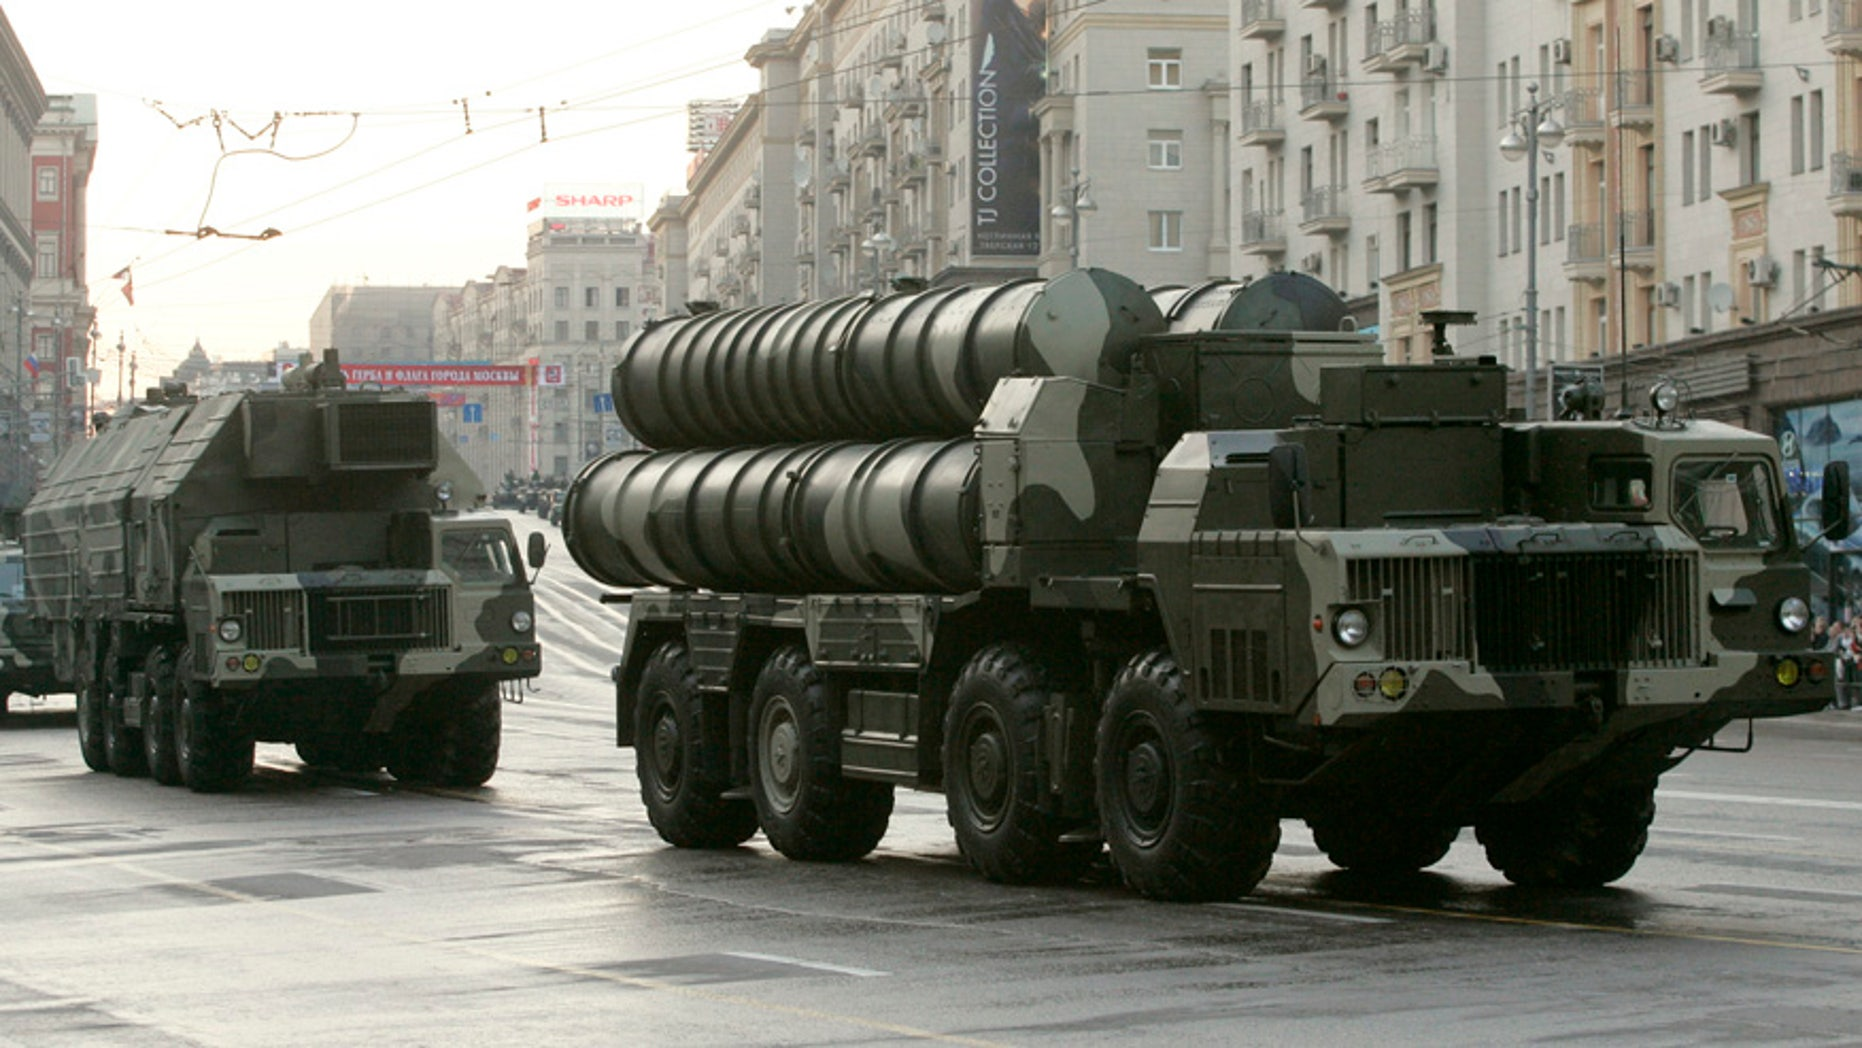 May 4, 2009: Russian S-300 anti-missile rocket system move along a central street during a rehearsal for a military parade in Moscow.